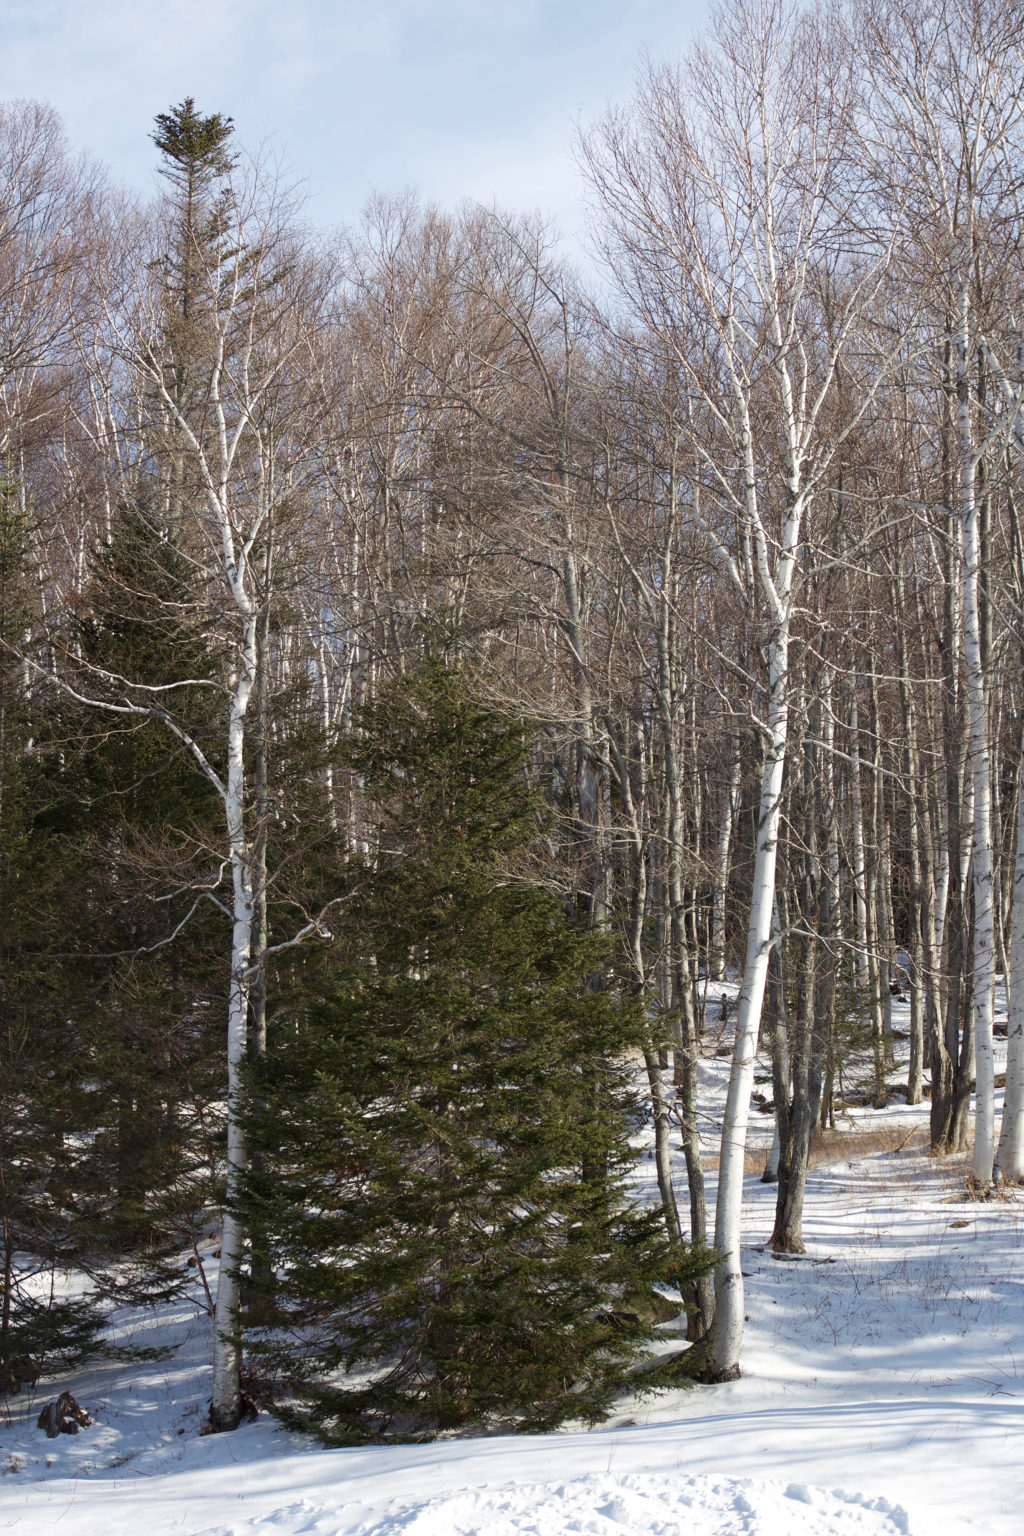 Trees at the Edge of a Snowy Wood